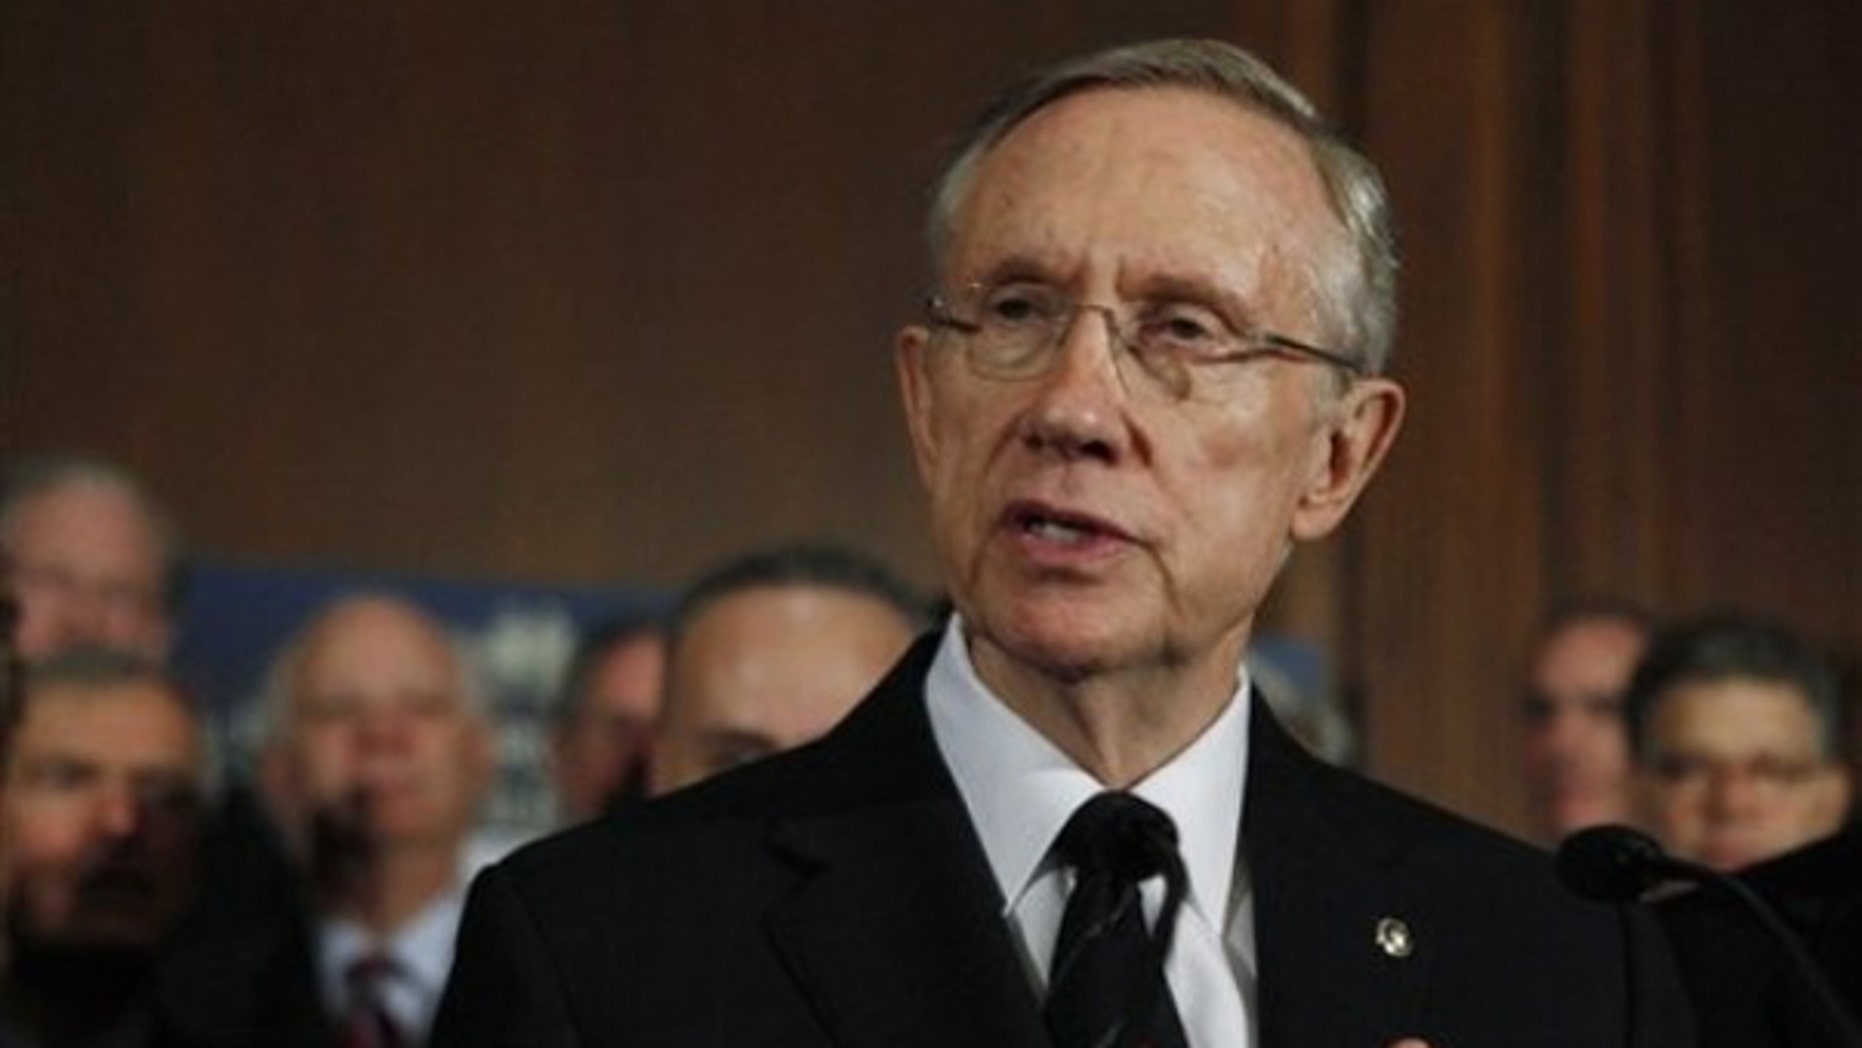 Senate Majority Leader Harry Reid gestures during a health care news conference on Capitol Hill Dec. 23. (AP Photo)